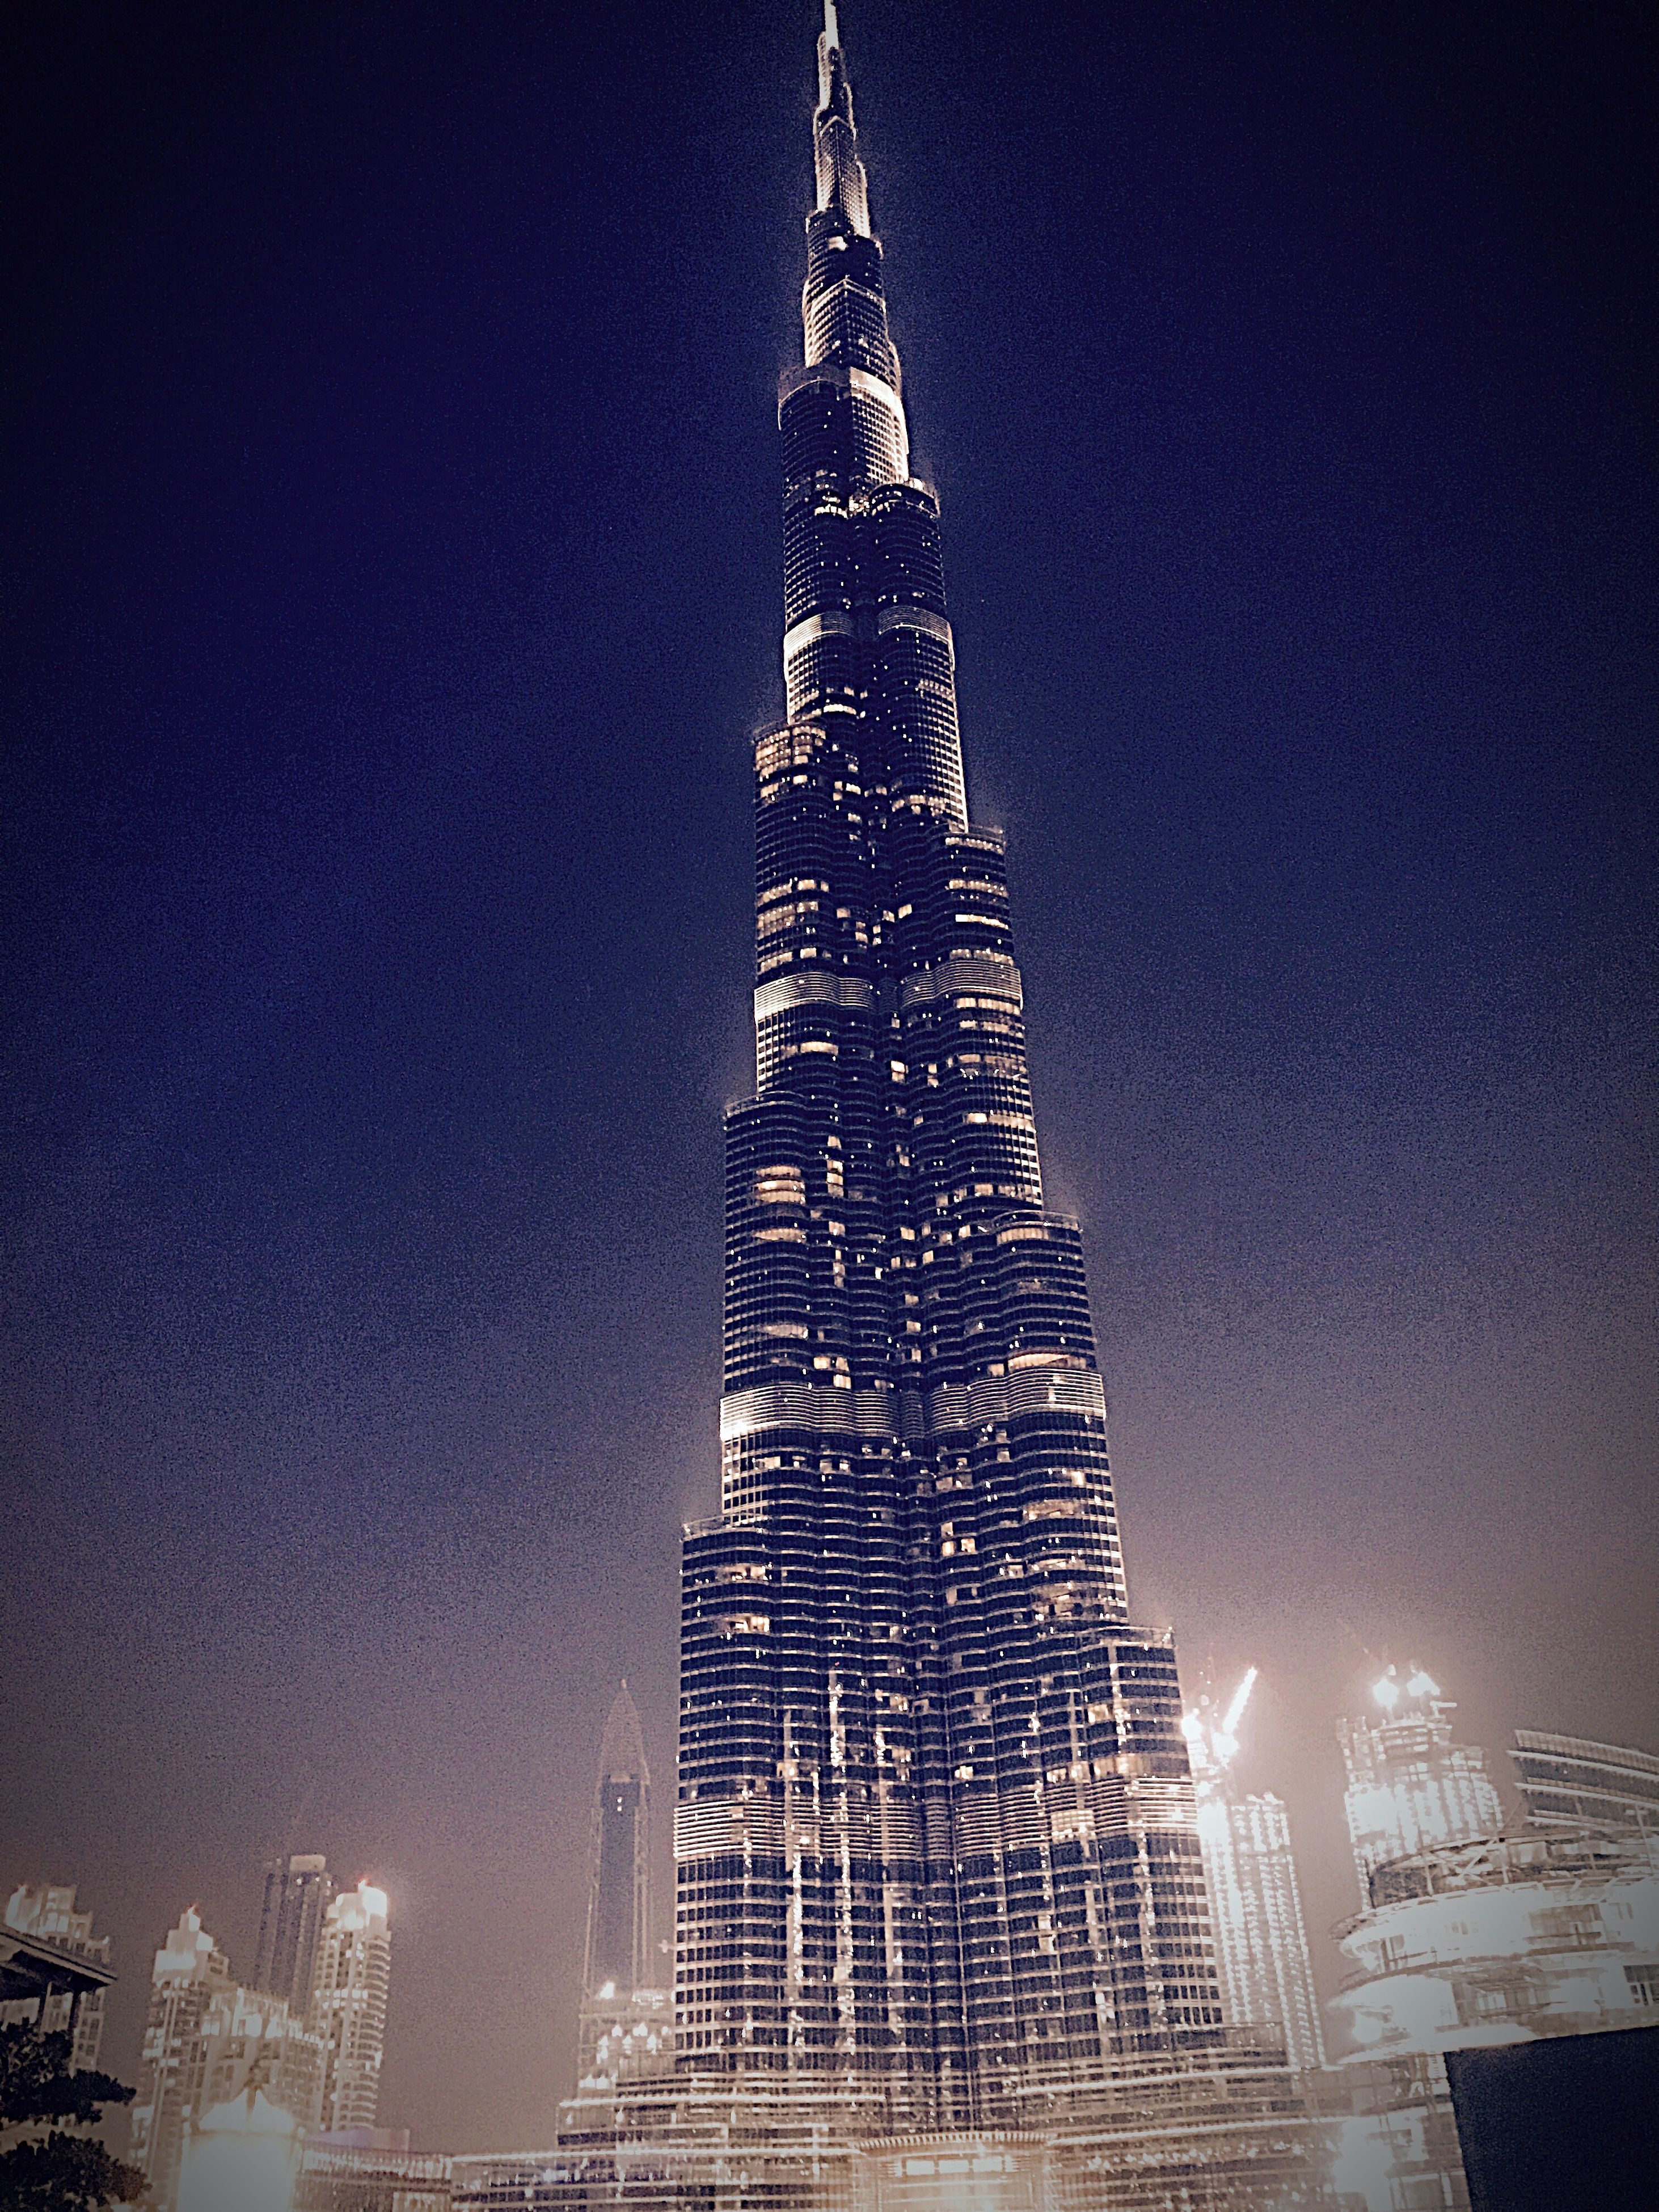 tall - high, tower, city, architecture, sky, night, skyscraper, illuminated, travel destinations, built structure, building exterior, no people, low angle view, outdoors, cityscape